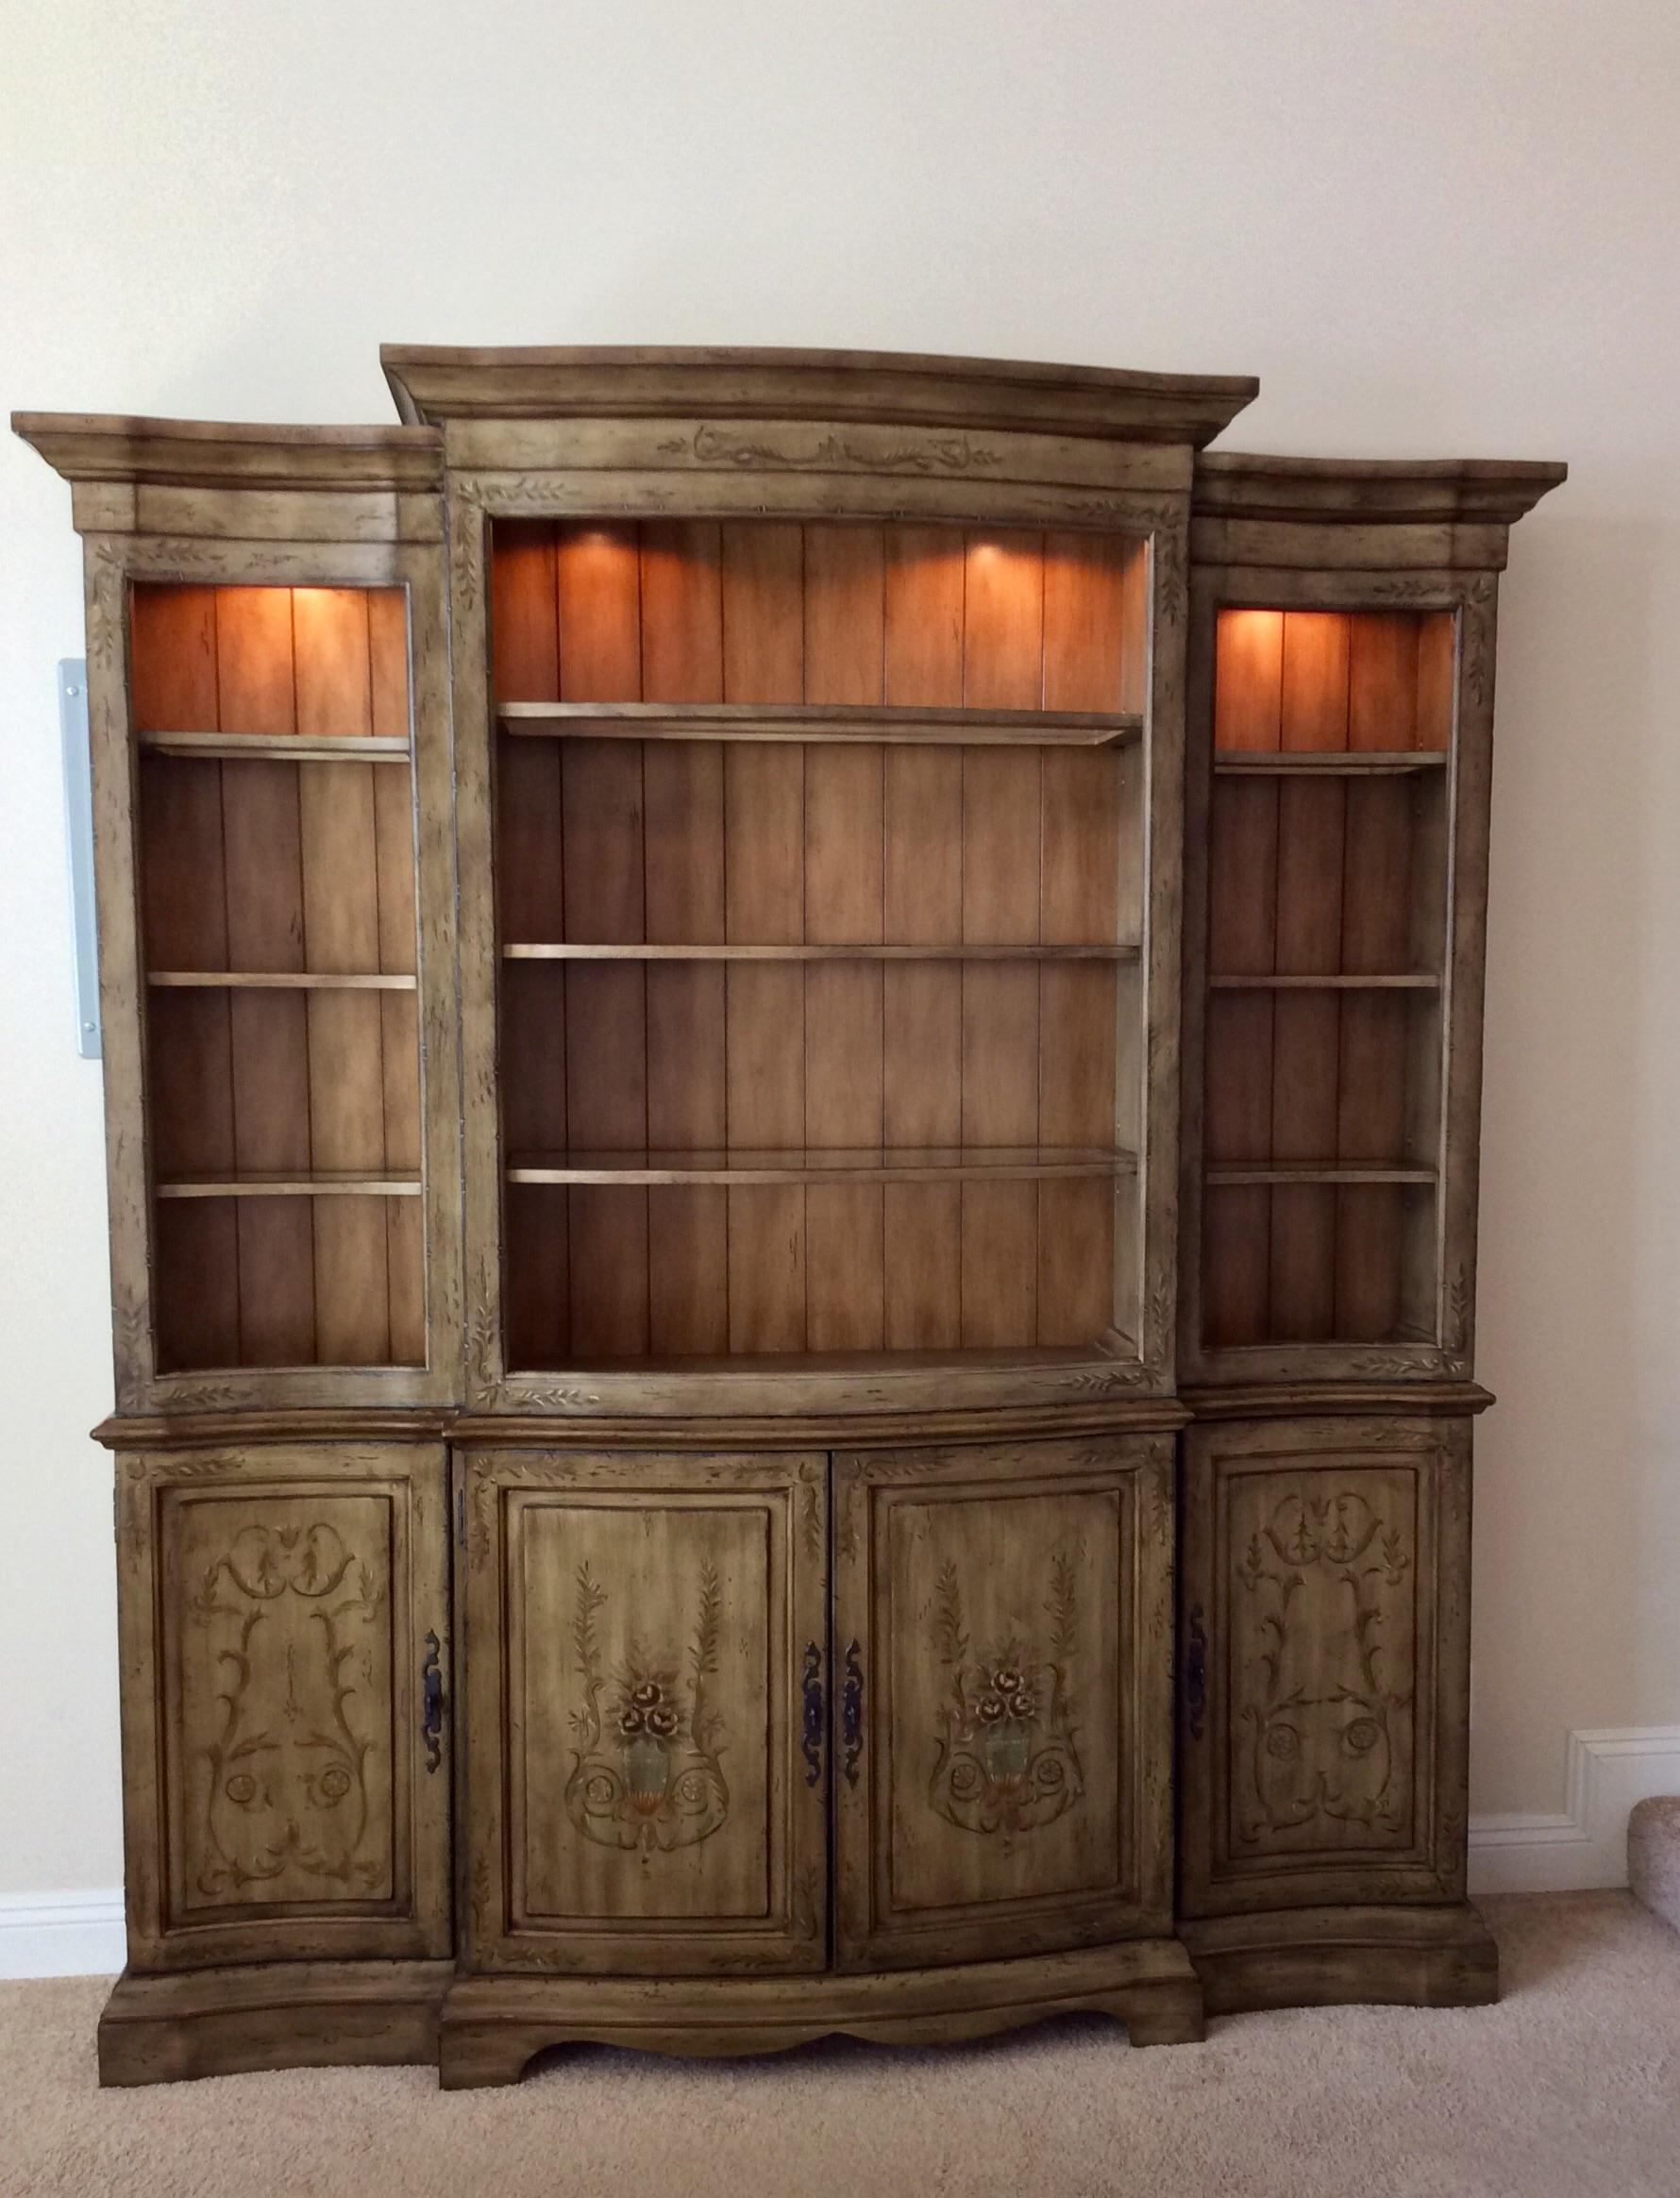 Genial Media Entertainment Credenza By Hooker (Seven Seau0027s)   Image 3 Of 12